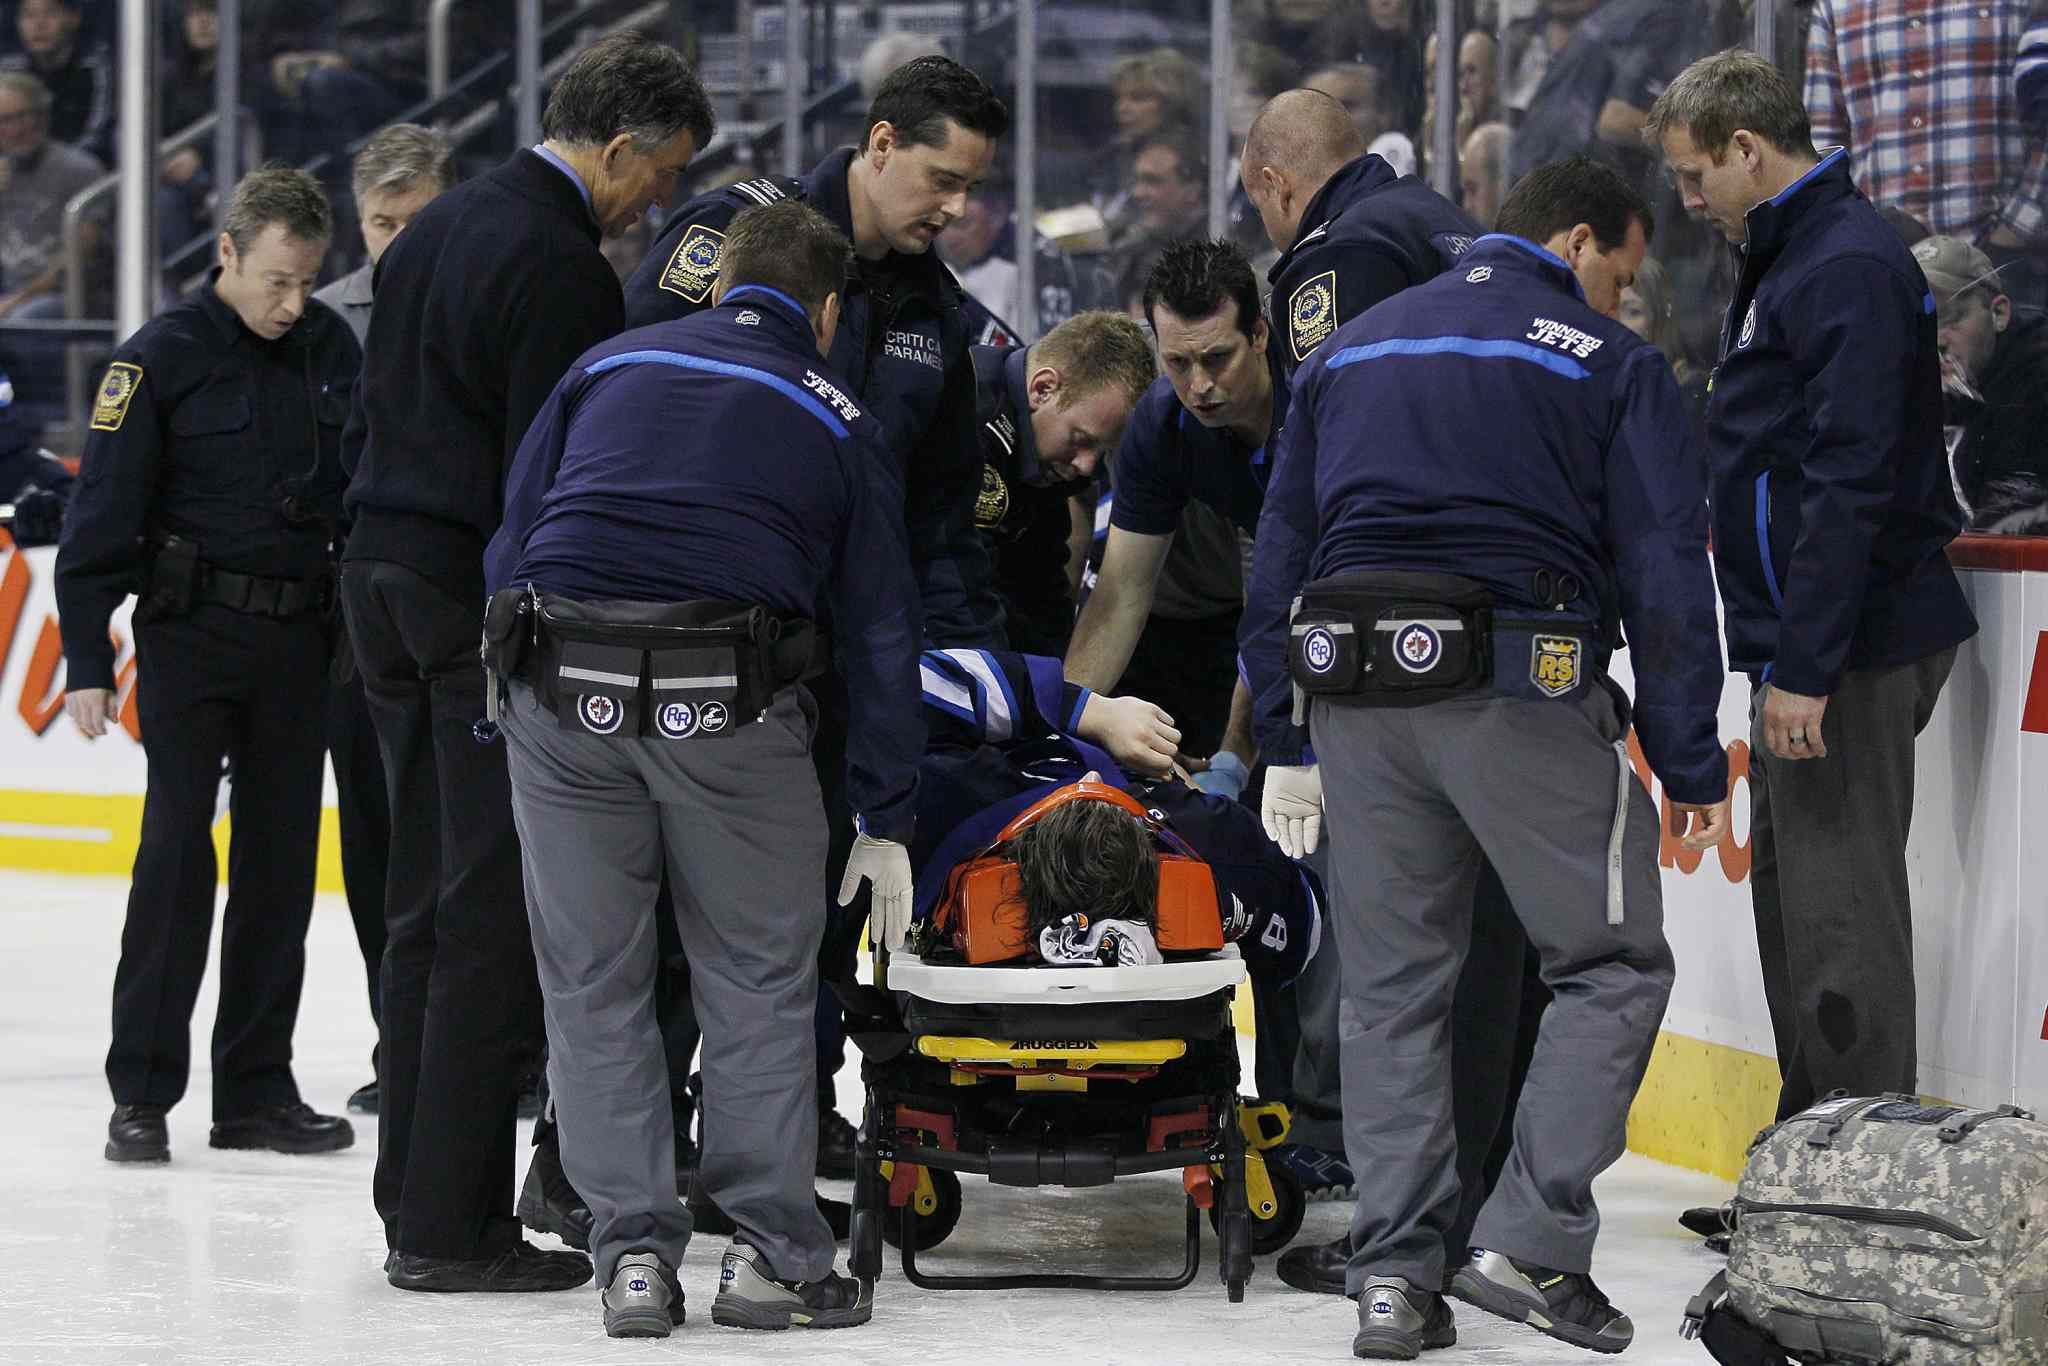 Winnipeg Jets' Jacob Trouba (8) is attended to by paramedics after crashing head first into the boards during second period NHL action against the St. Louis Blues in Winnipeg on Friday, October 18, 2013. THE CANADIAN PRESS/John Woods